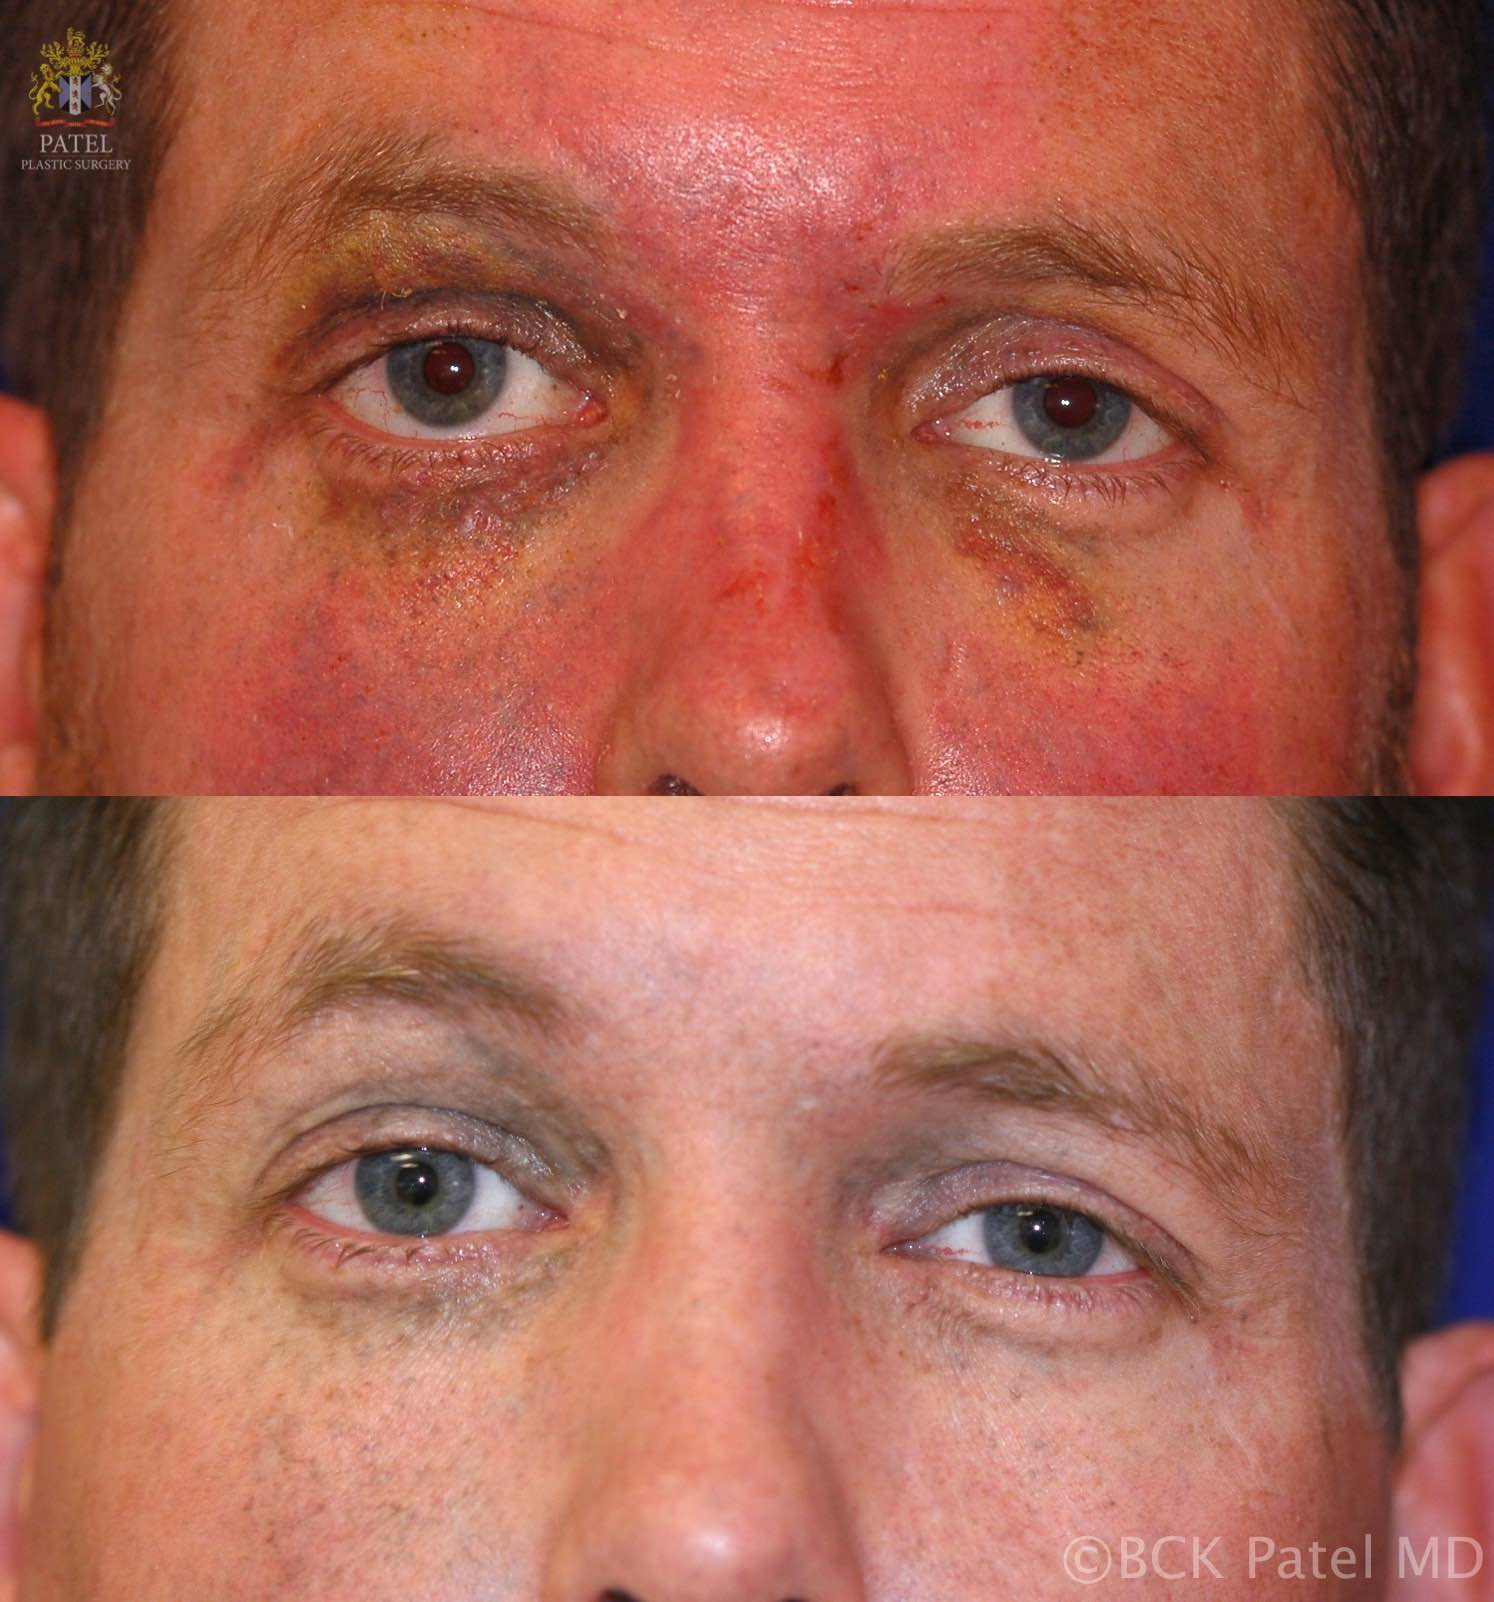 englishsurgeon.com. Photos showing the improvemnt in traumatic tattoos on the face and eyelids. Treated with lasers. BCK Patel MD, FRCS, Salt Lake City, Utah, St. George